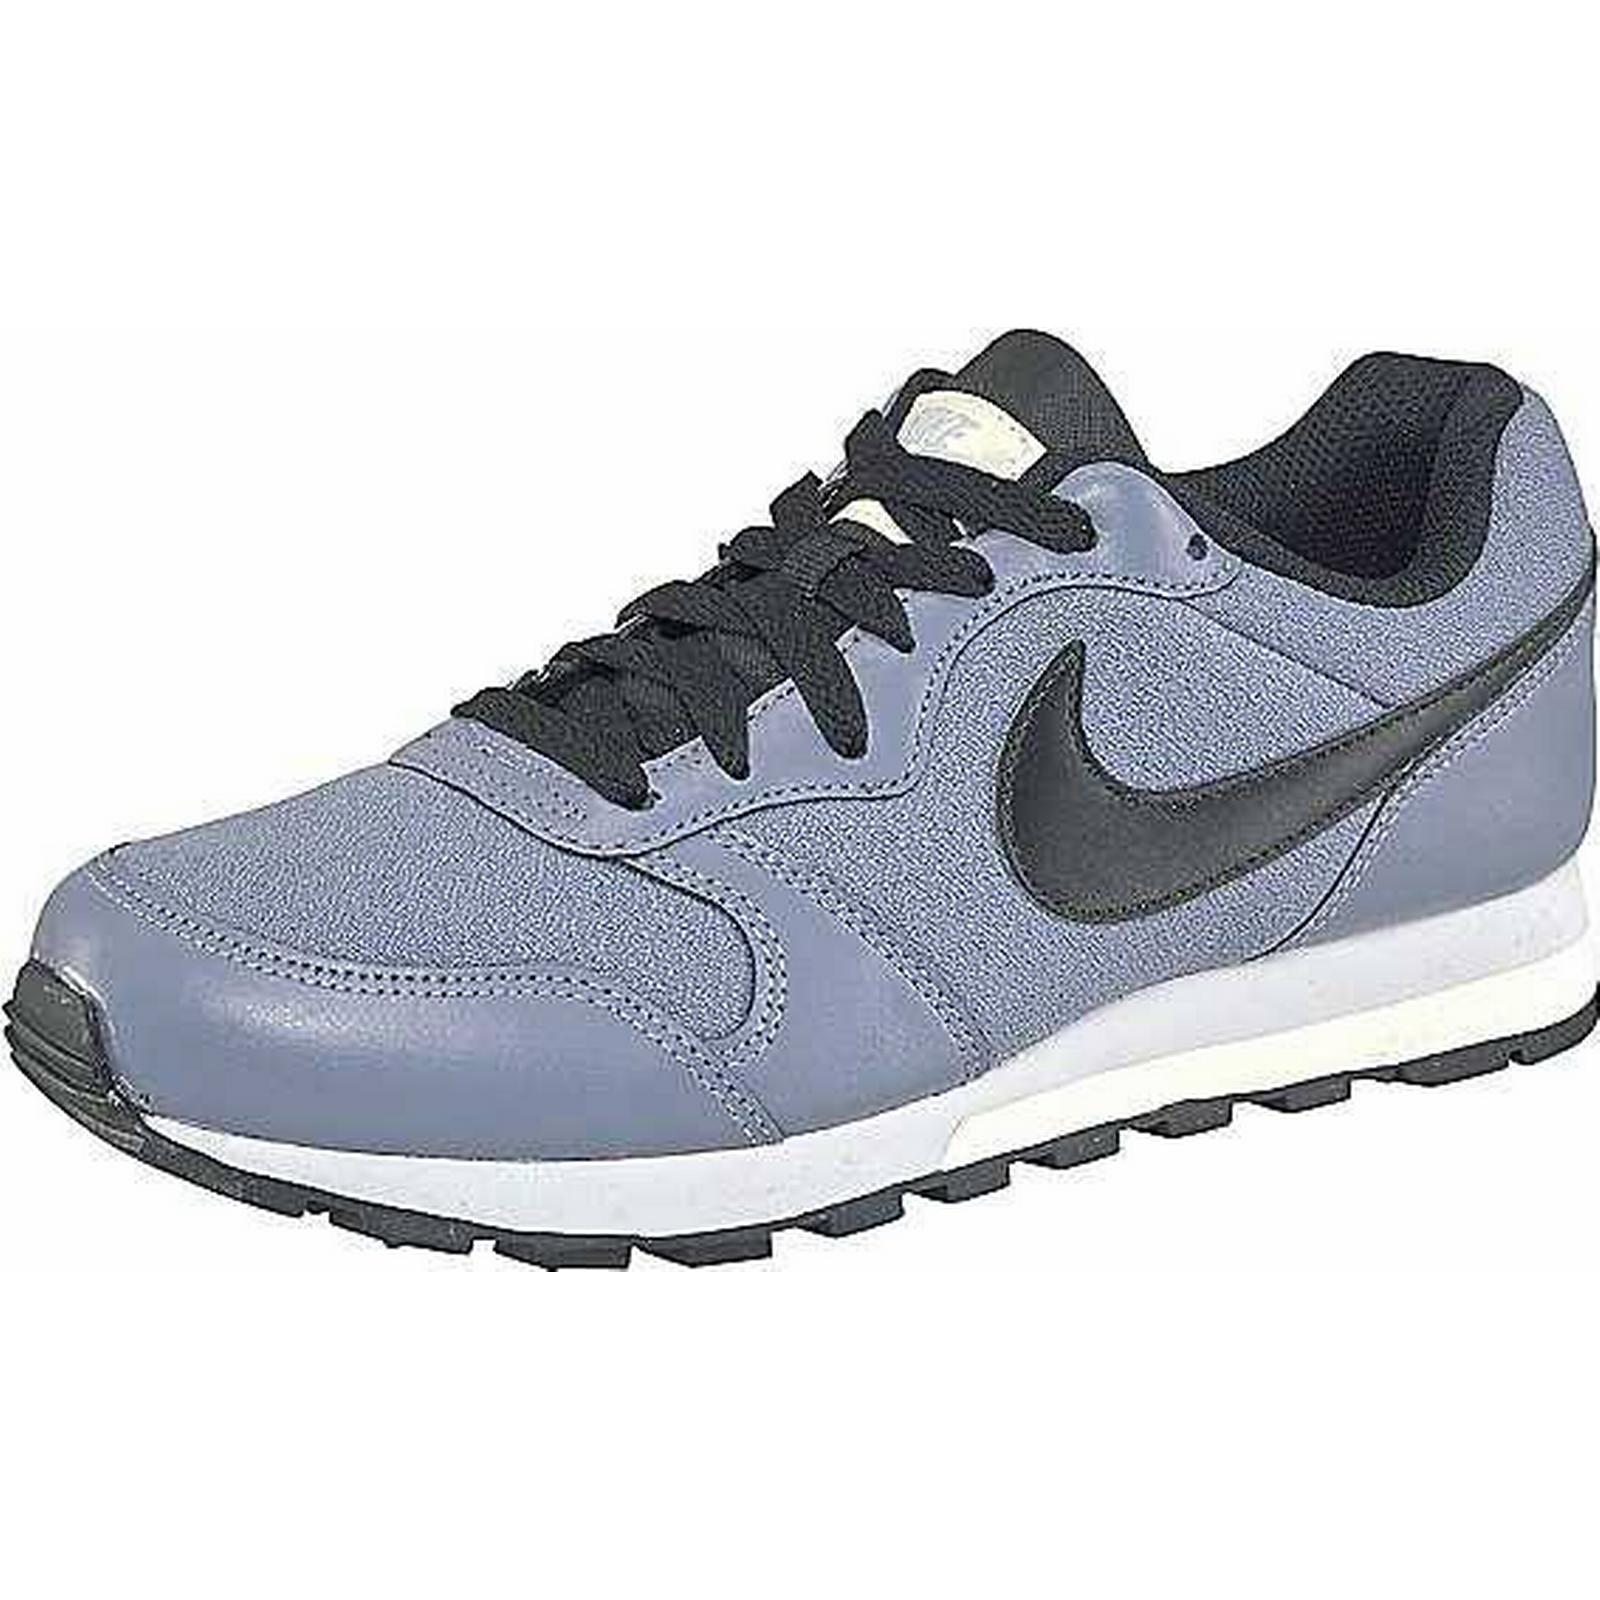 Nike 'MD Runner 2' Trainers Quality by Nike-Gentlemen/Ladies-Excellent Quality Trainers 6a4af8